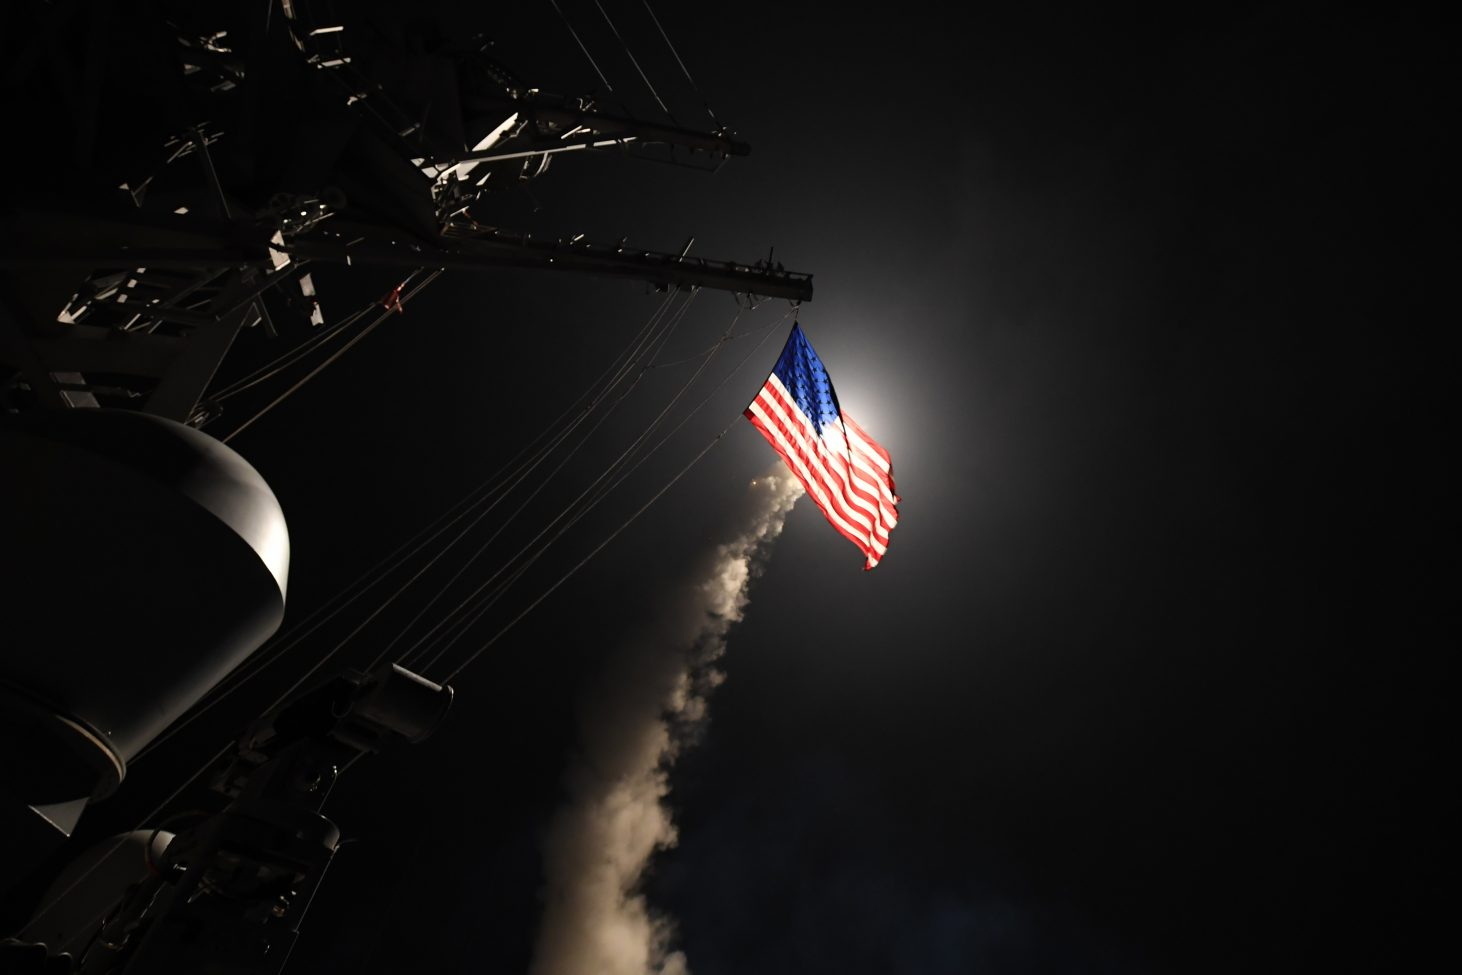 The guided-missile destroyer USS Porter (DDG 78) conducts strike operations against a target in Syria while in the Mediterranean Sea, The Porter conducted naval operations in the U.S. 6th Fleet area of operations in support of U.S. national security interests in Europe. (U.S. Navy photo by Mass Communication Specialist 3rd Class Ford Williams)